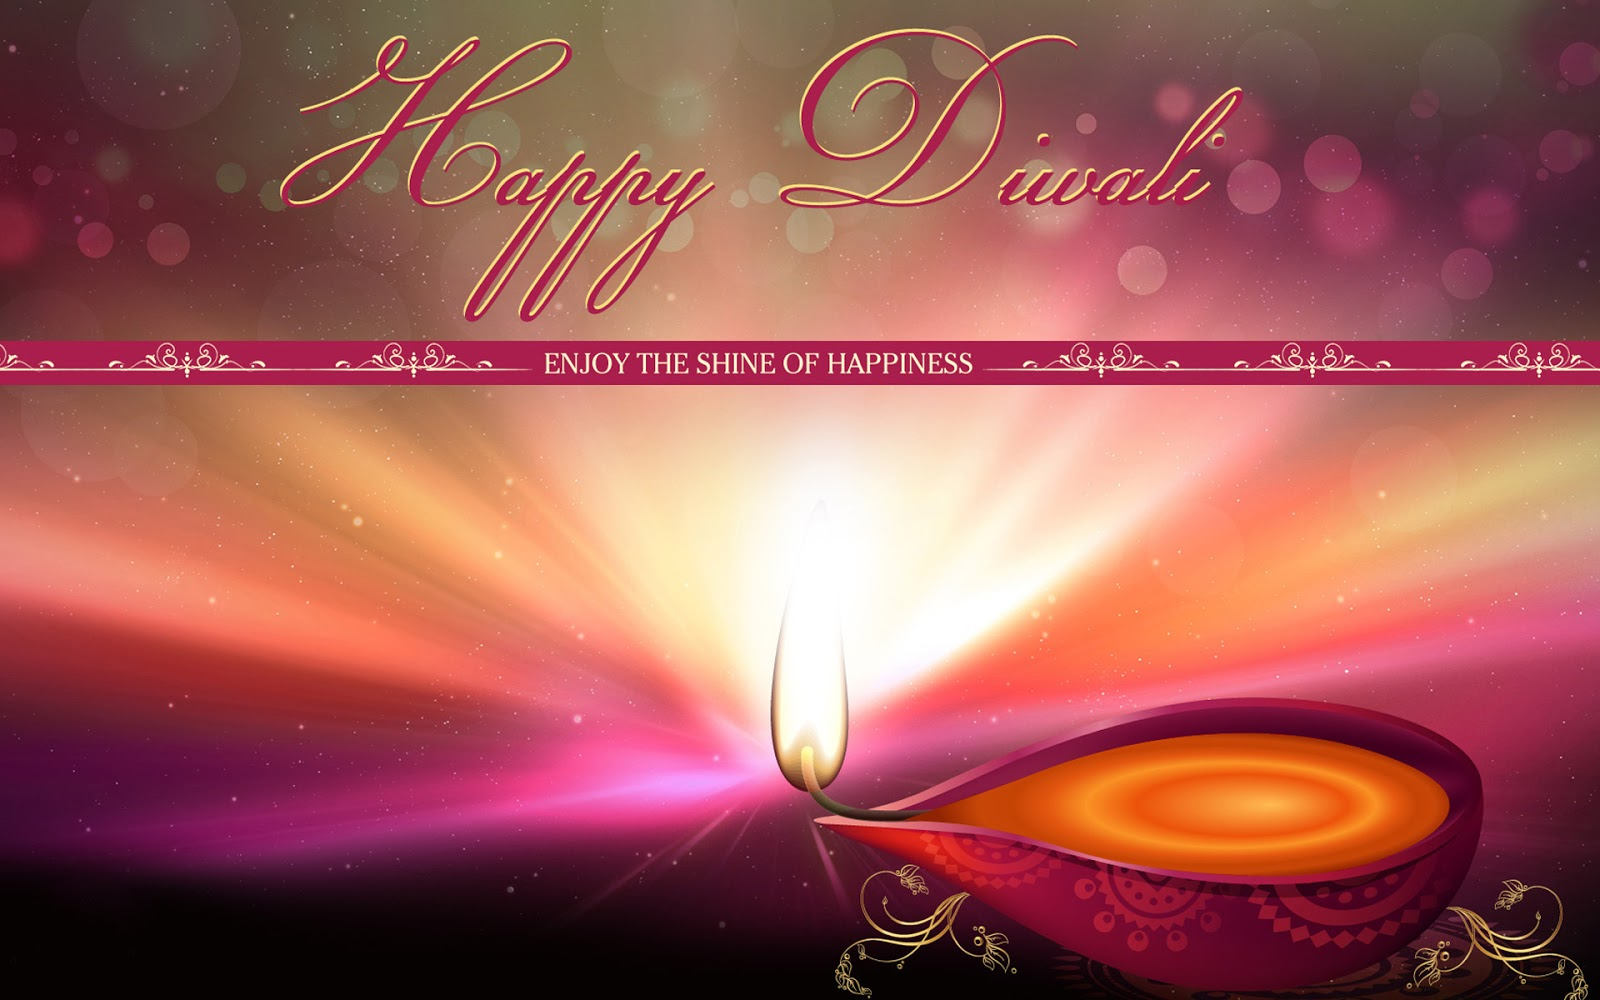 pictures deepavali greetings wallpapers - photo #14